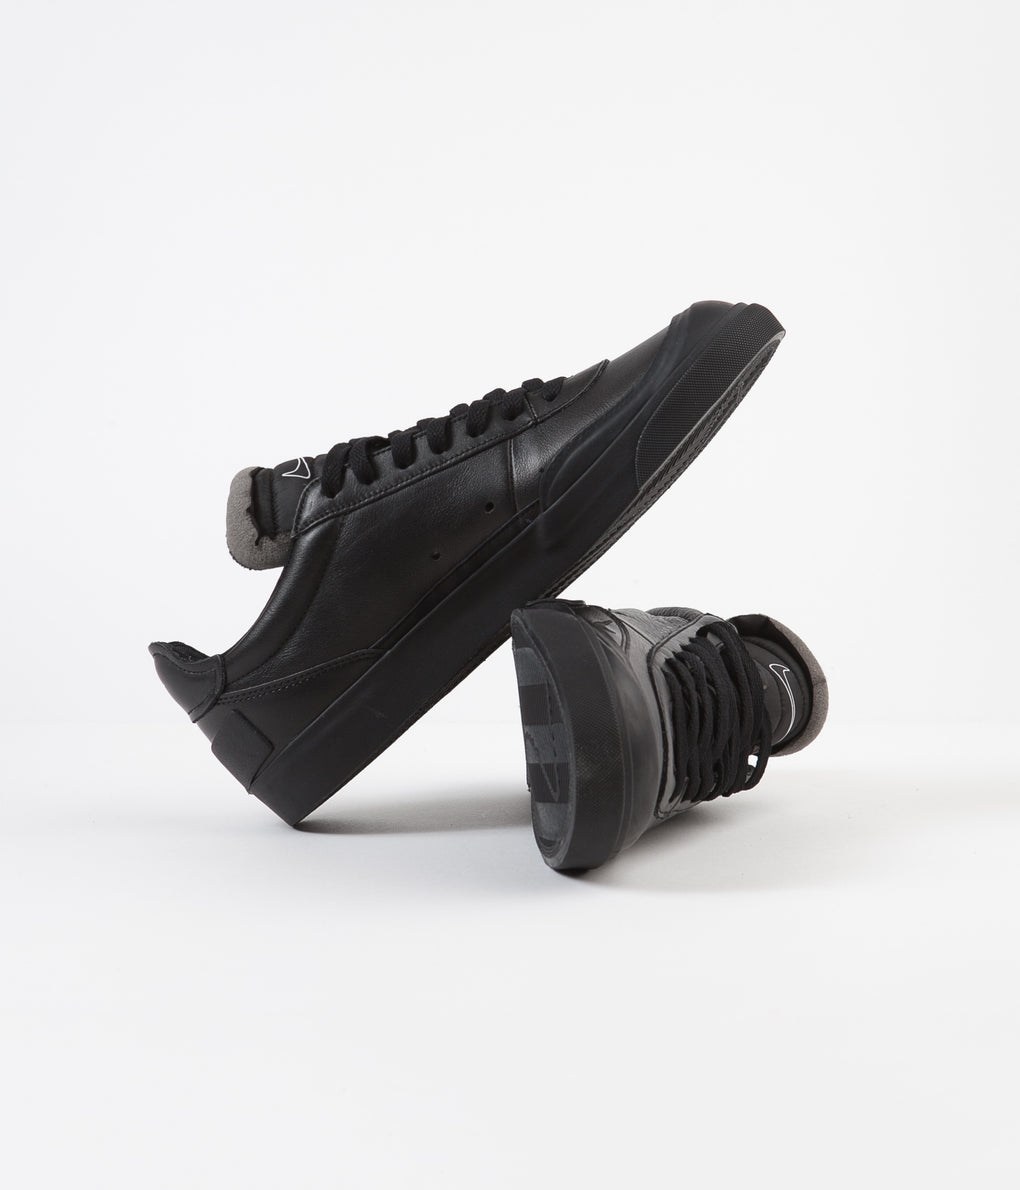 Nike Drop Type Premium Shoes - Black / White